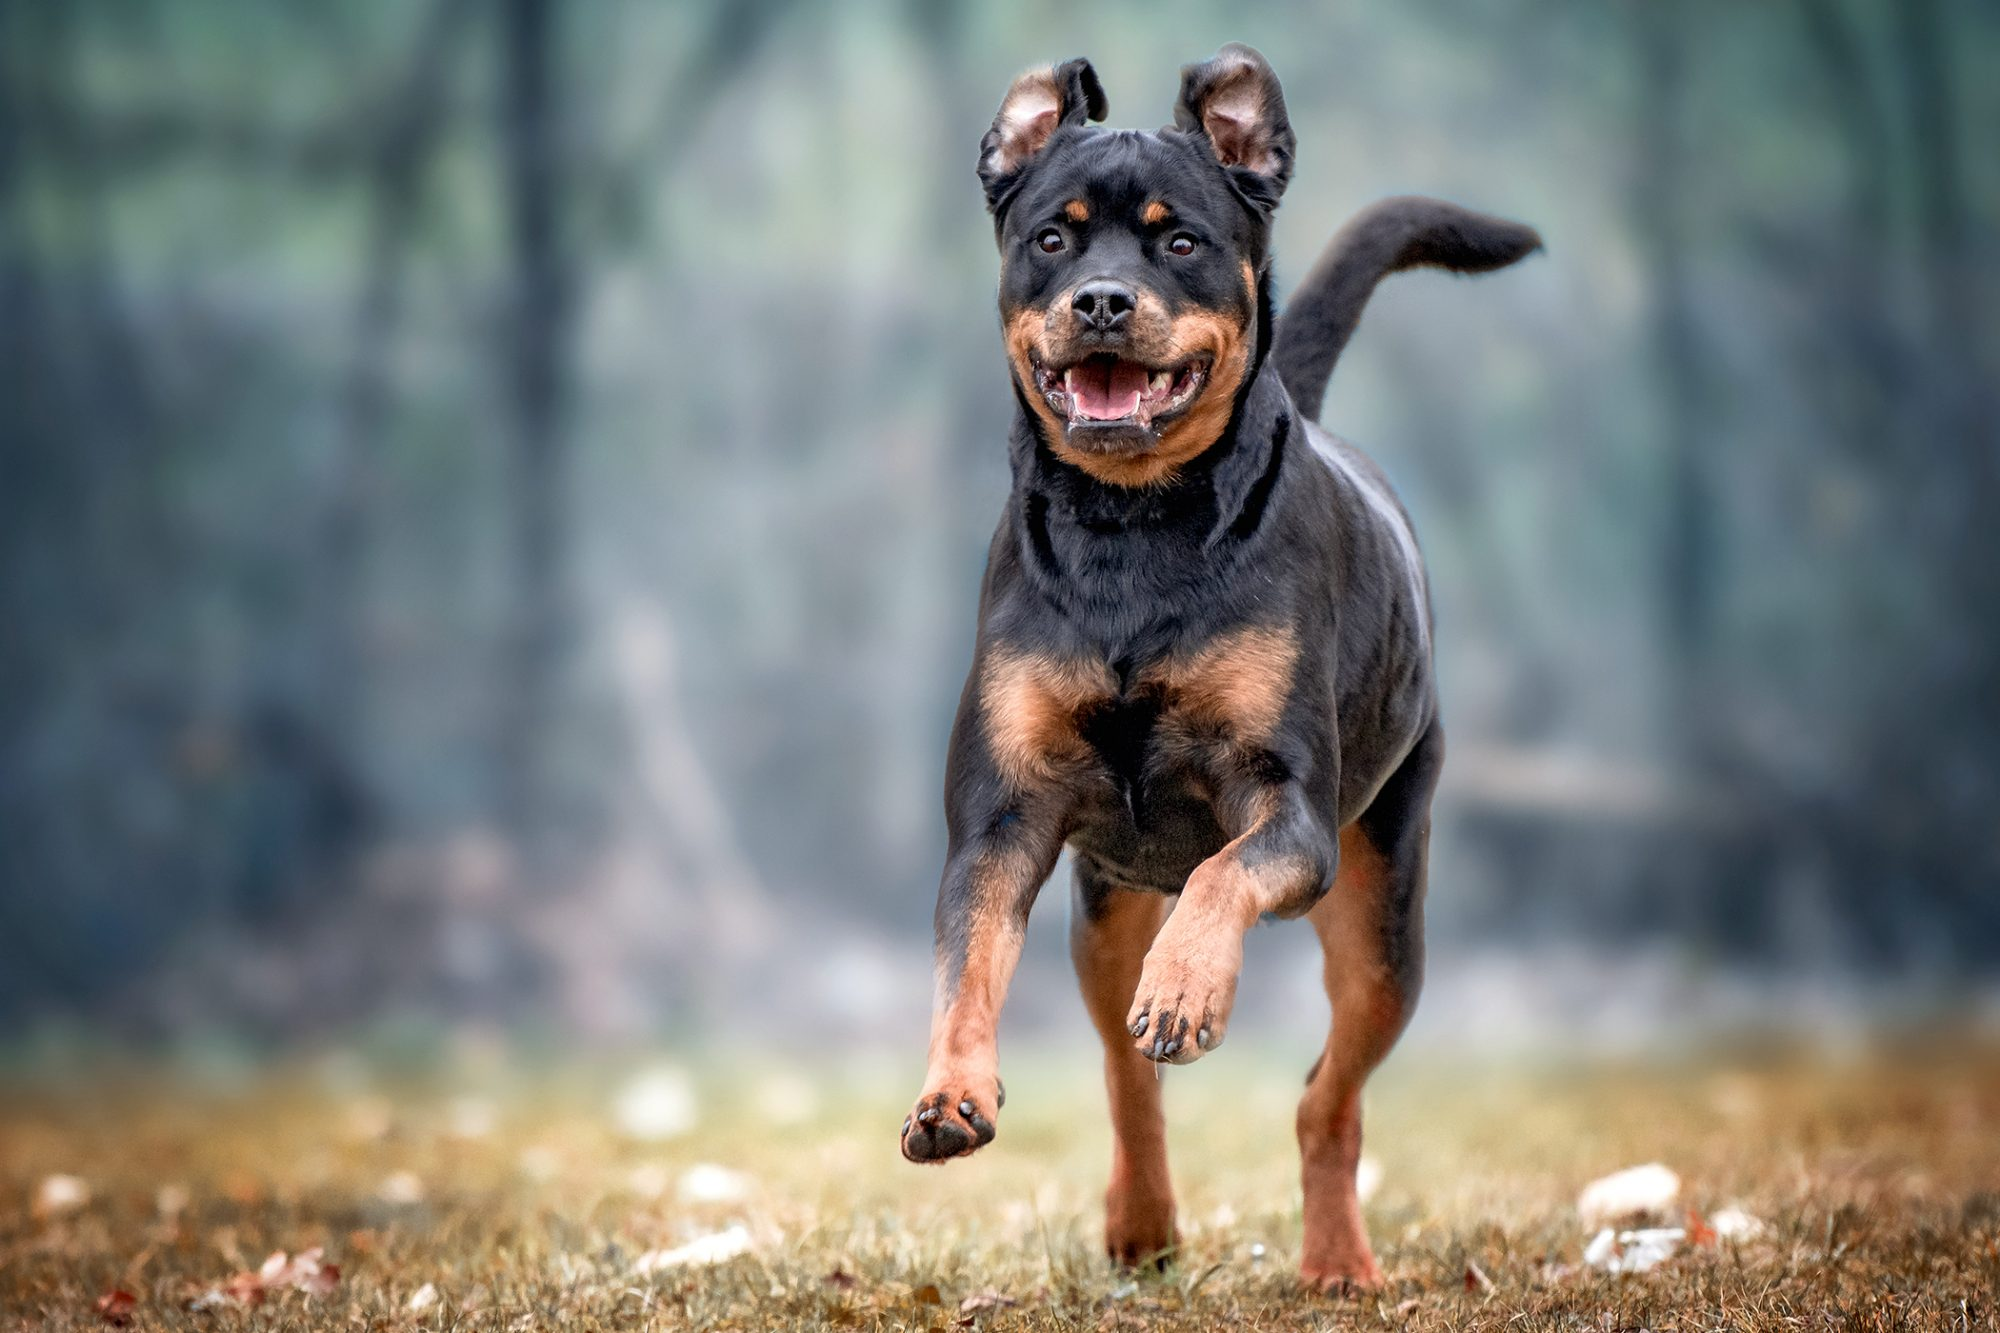 Adult Rottweiler happily runs through grass on a cloudy day